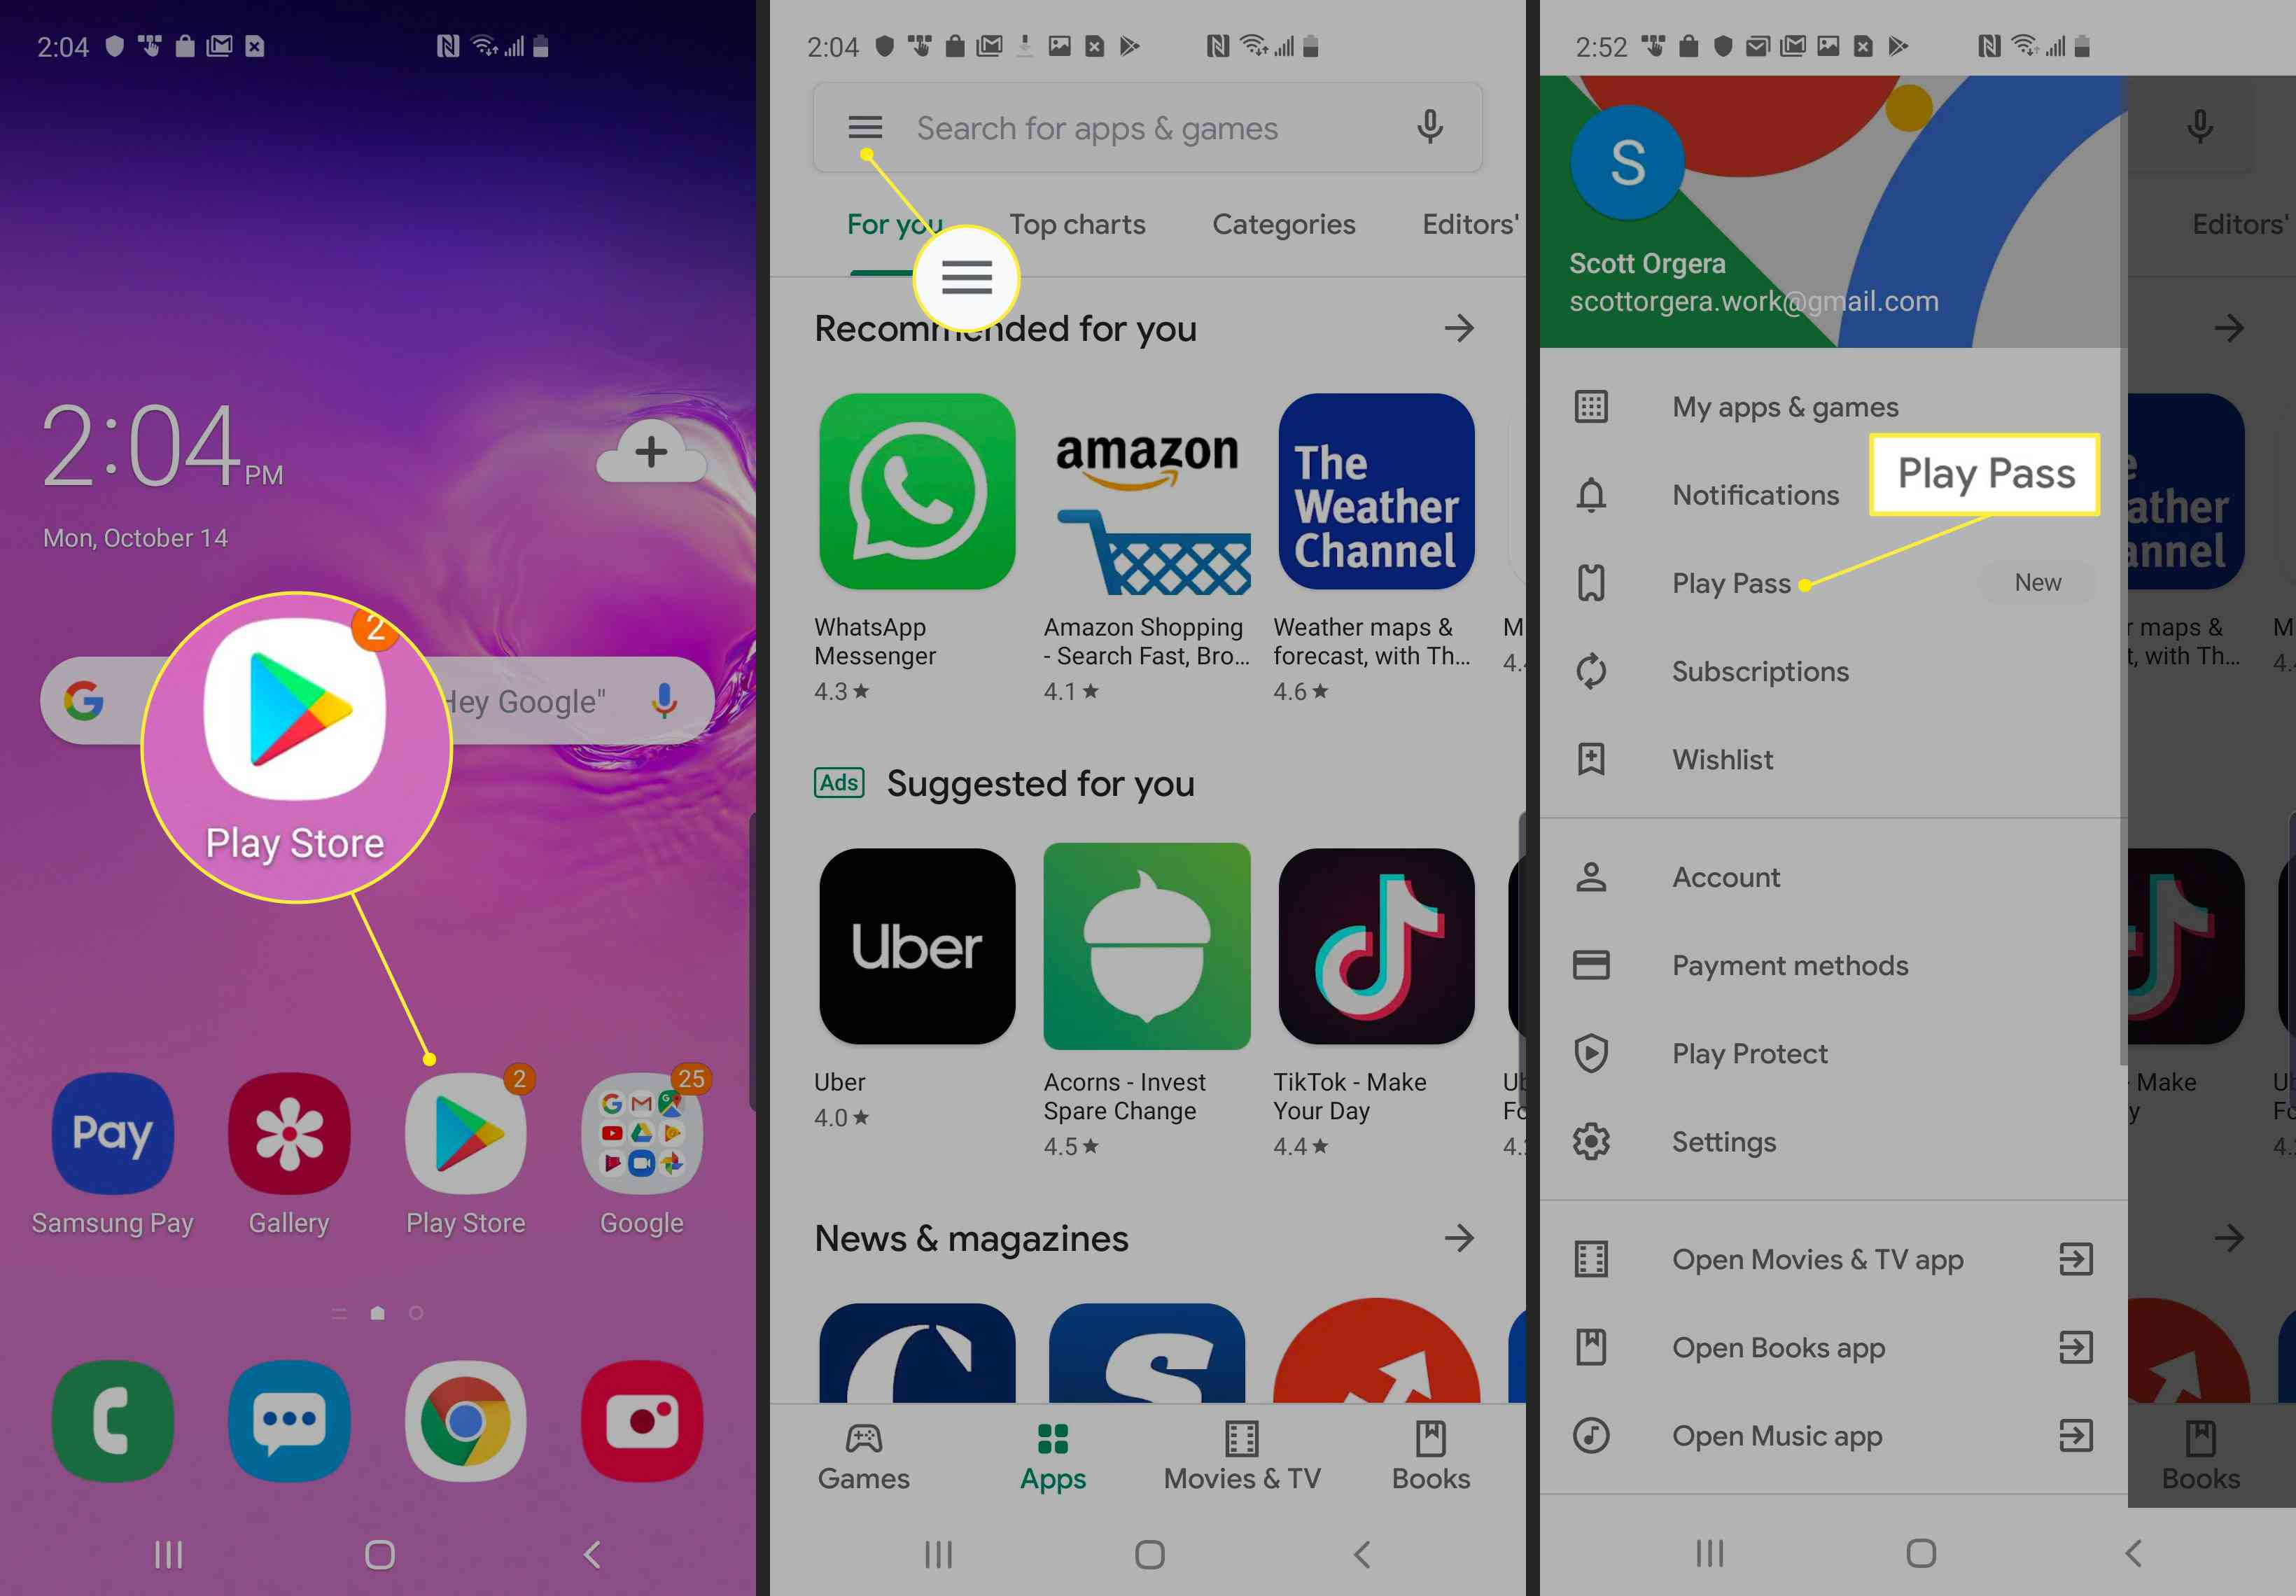 Path from Android home screen to Google Play Store menu on Android